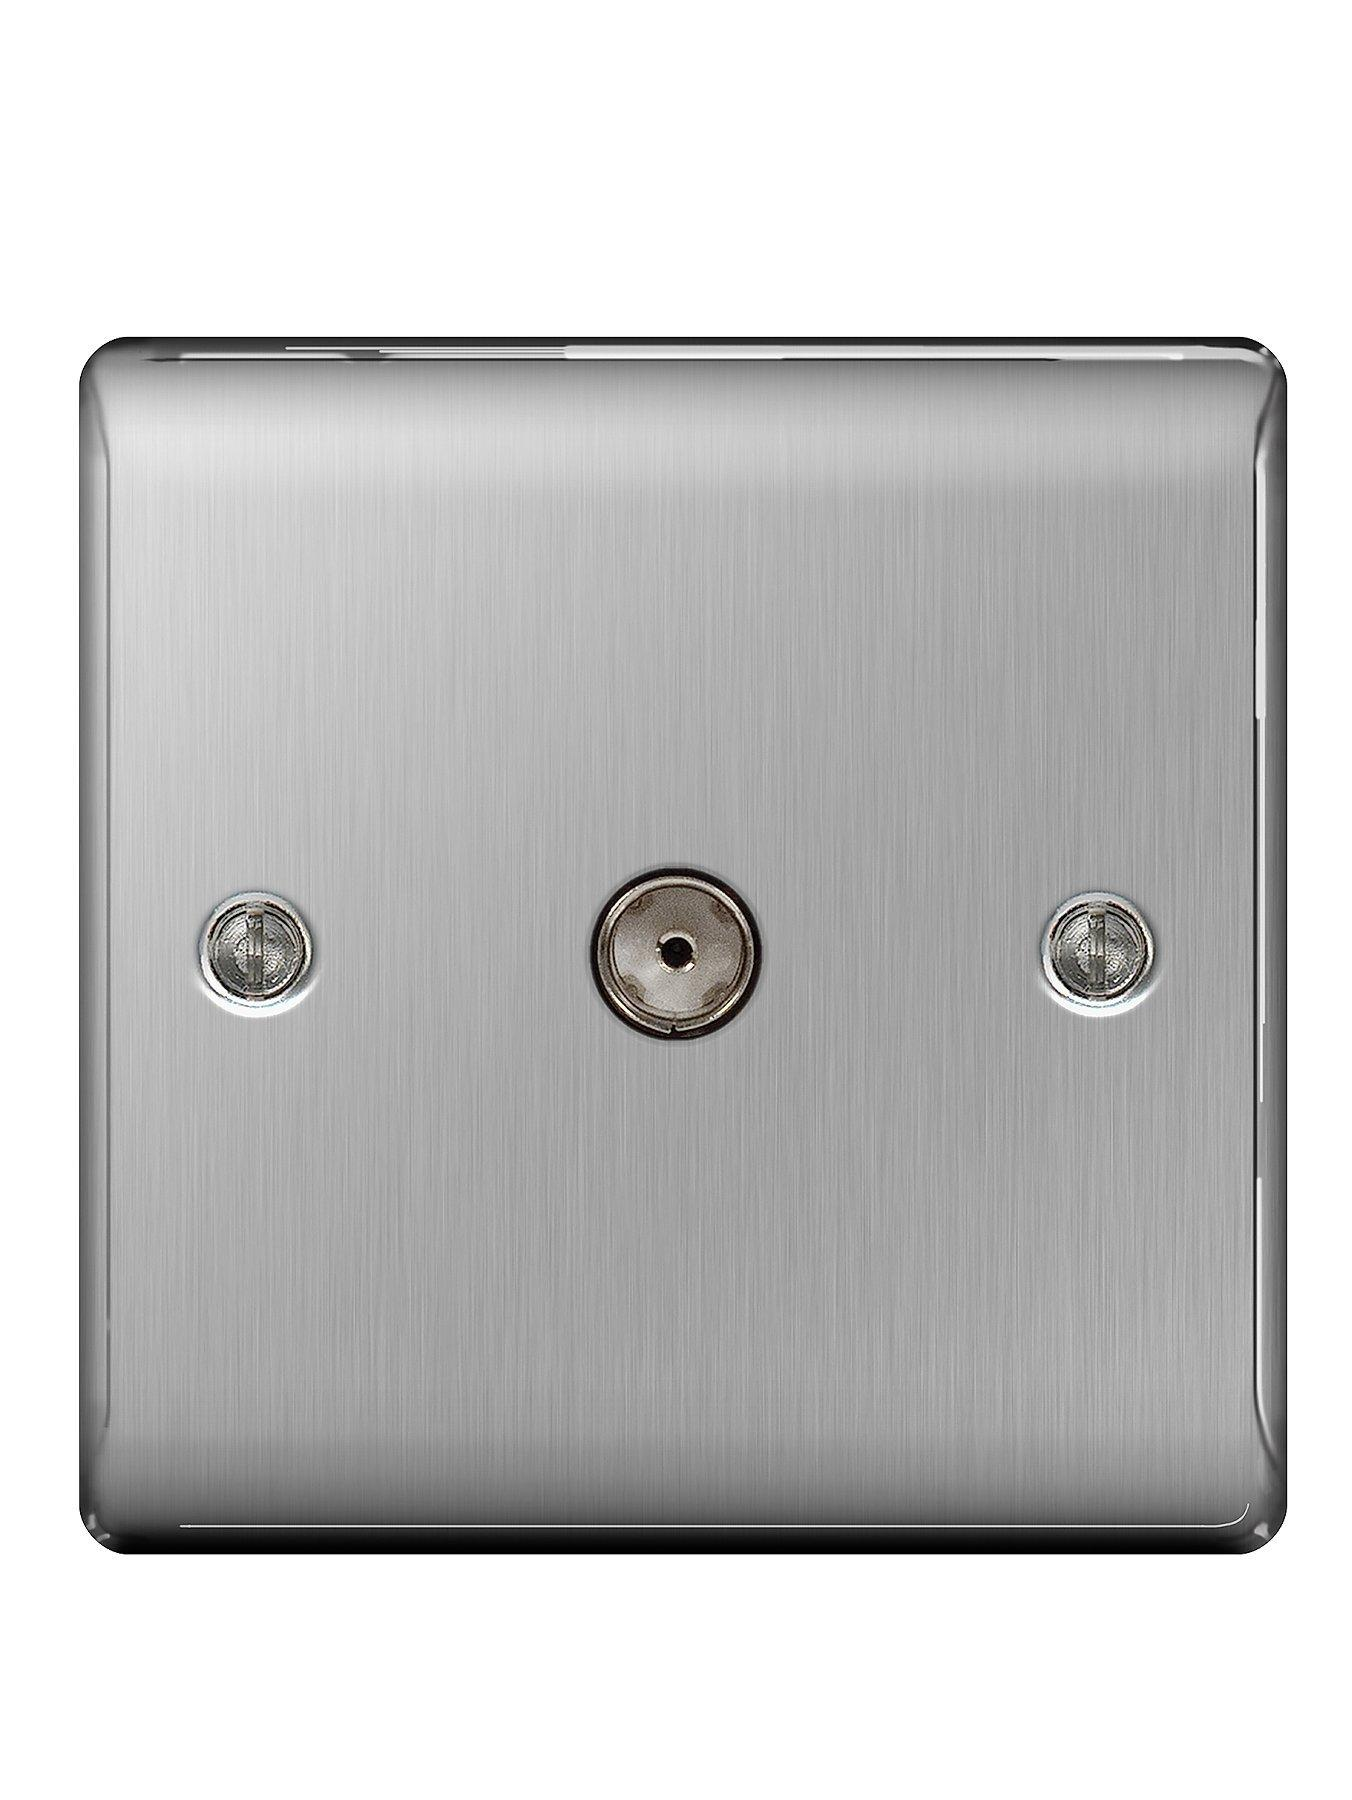 Compare cheap offers & prices of British General Brushed Steel 1 Gang Co-Axial Socket manufactured by British General